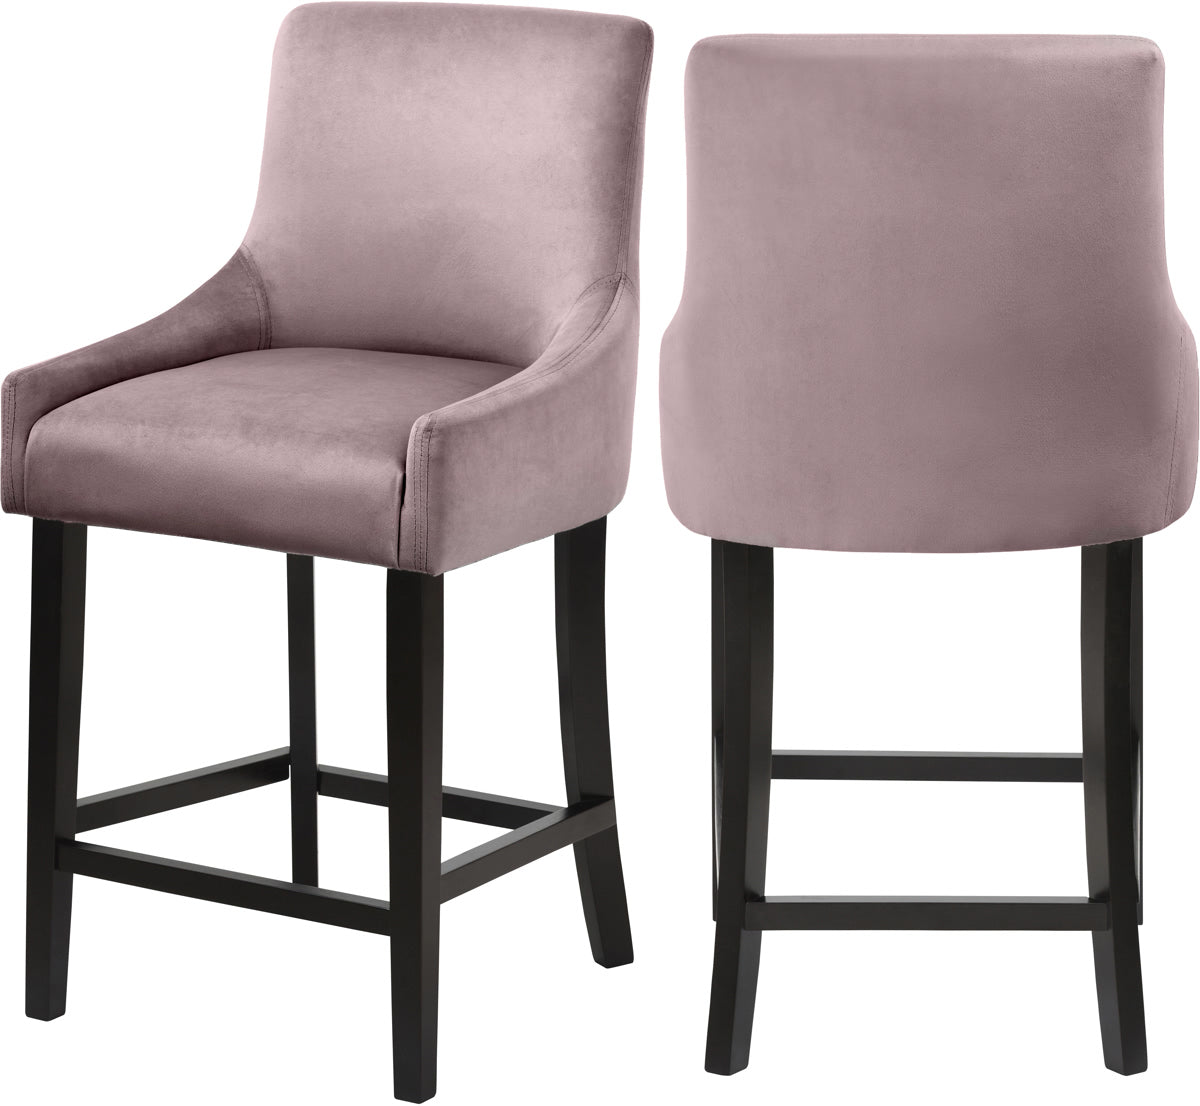 Meridian Furniture Demi Pink Velvet StoolMeridian Furniture - Stool - Minimal And Modern - 1